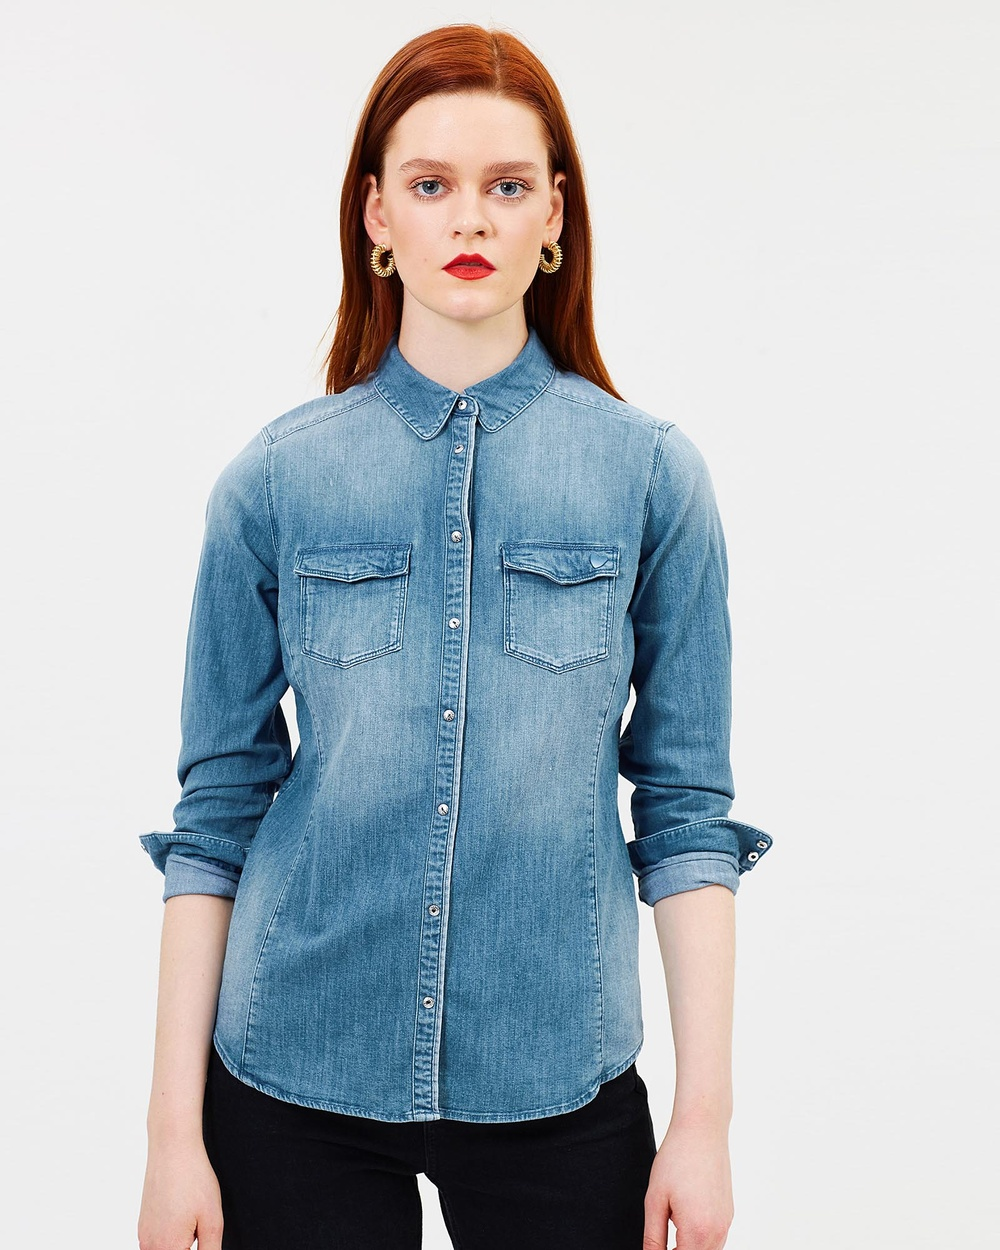 Maison Scotch Denim Fitted Western Shirt Tops Blue Denim Fitted Western Shirt